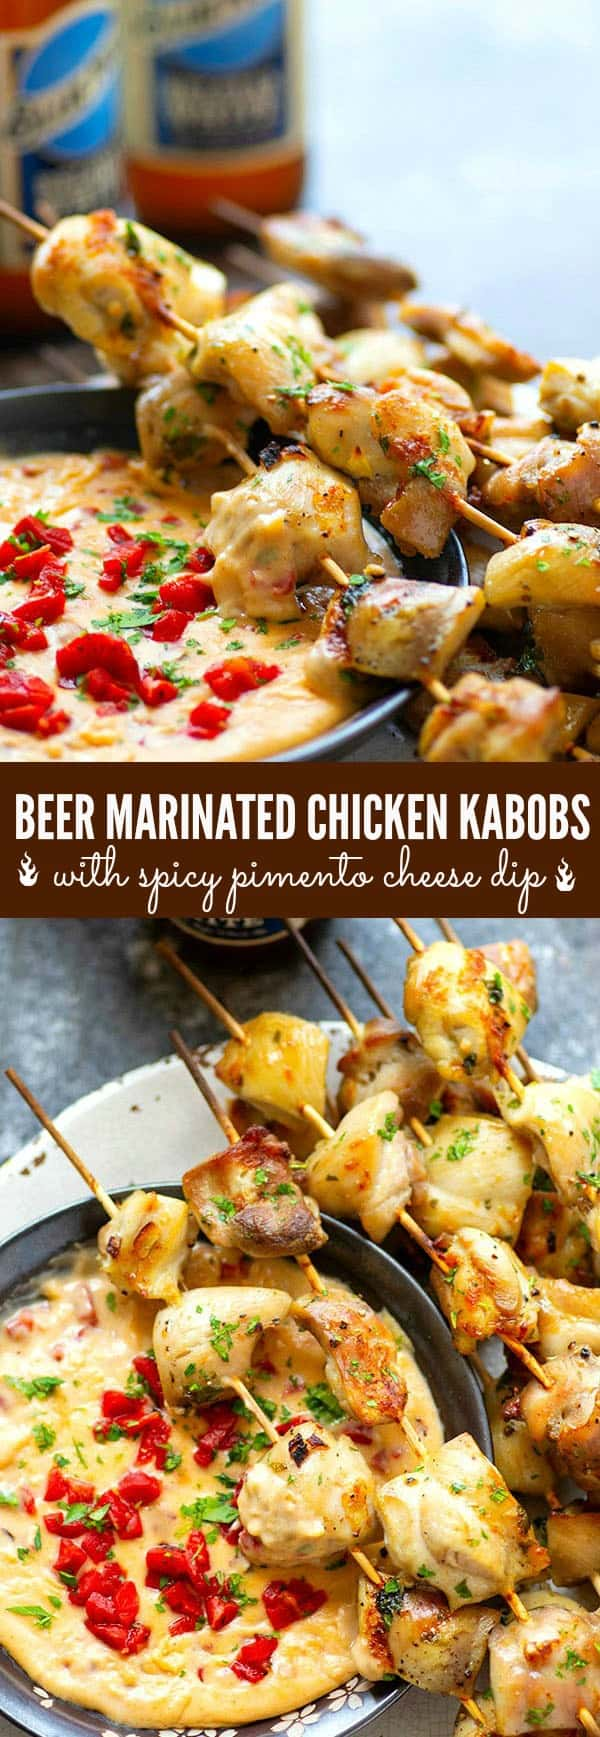 Incredibly juicy and flavorful beer marinated chicken kabobs are quick to throw on the grill for any cookout! Paired with a spicy pimento cheese dip, these chicken kabobs will quickly become a cookout staple.